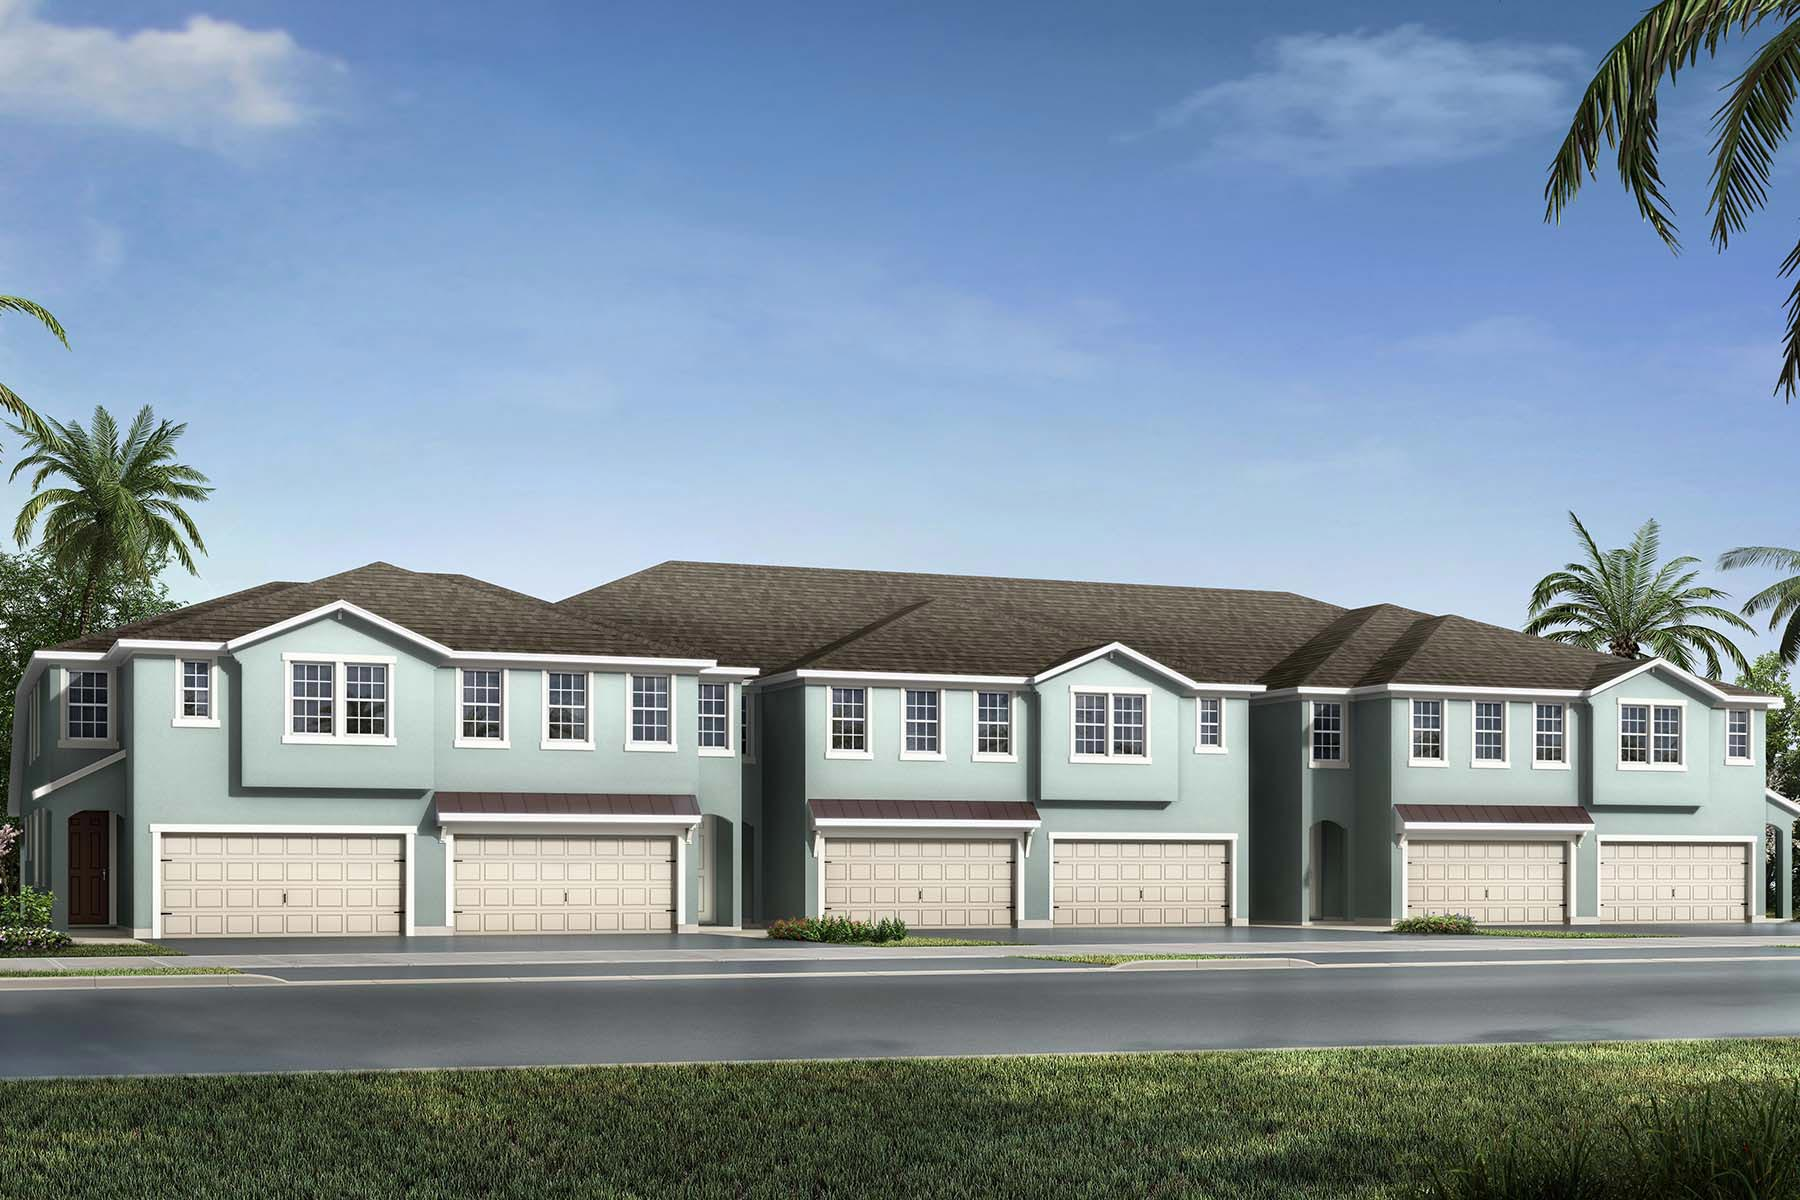 Venice Plan TownHomes at Avea Pointe in Lutz Florida by Mattamy Homes